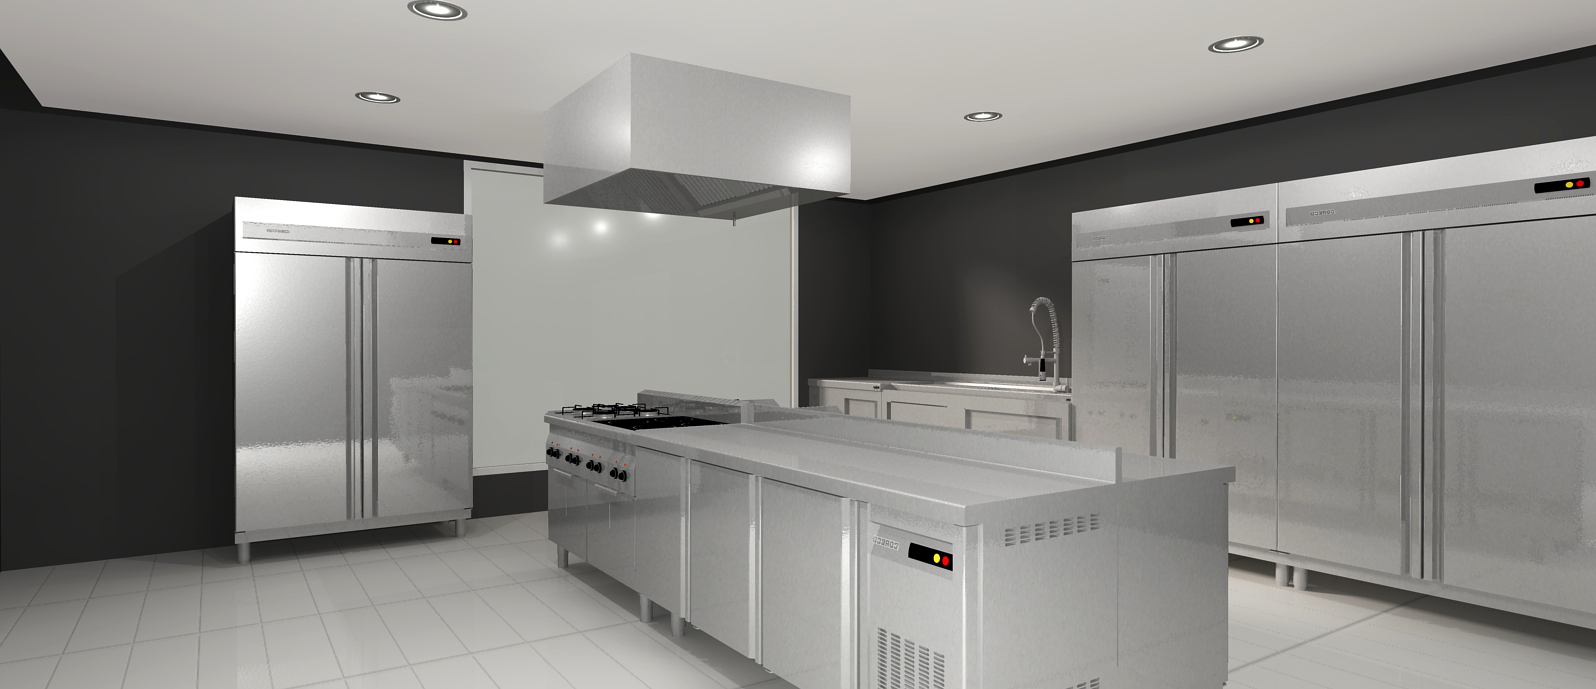 Autokitchen photos 360 panoramic views plans and for Software cocinas